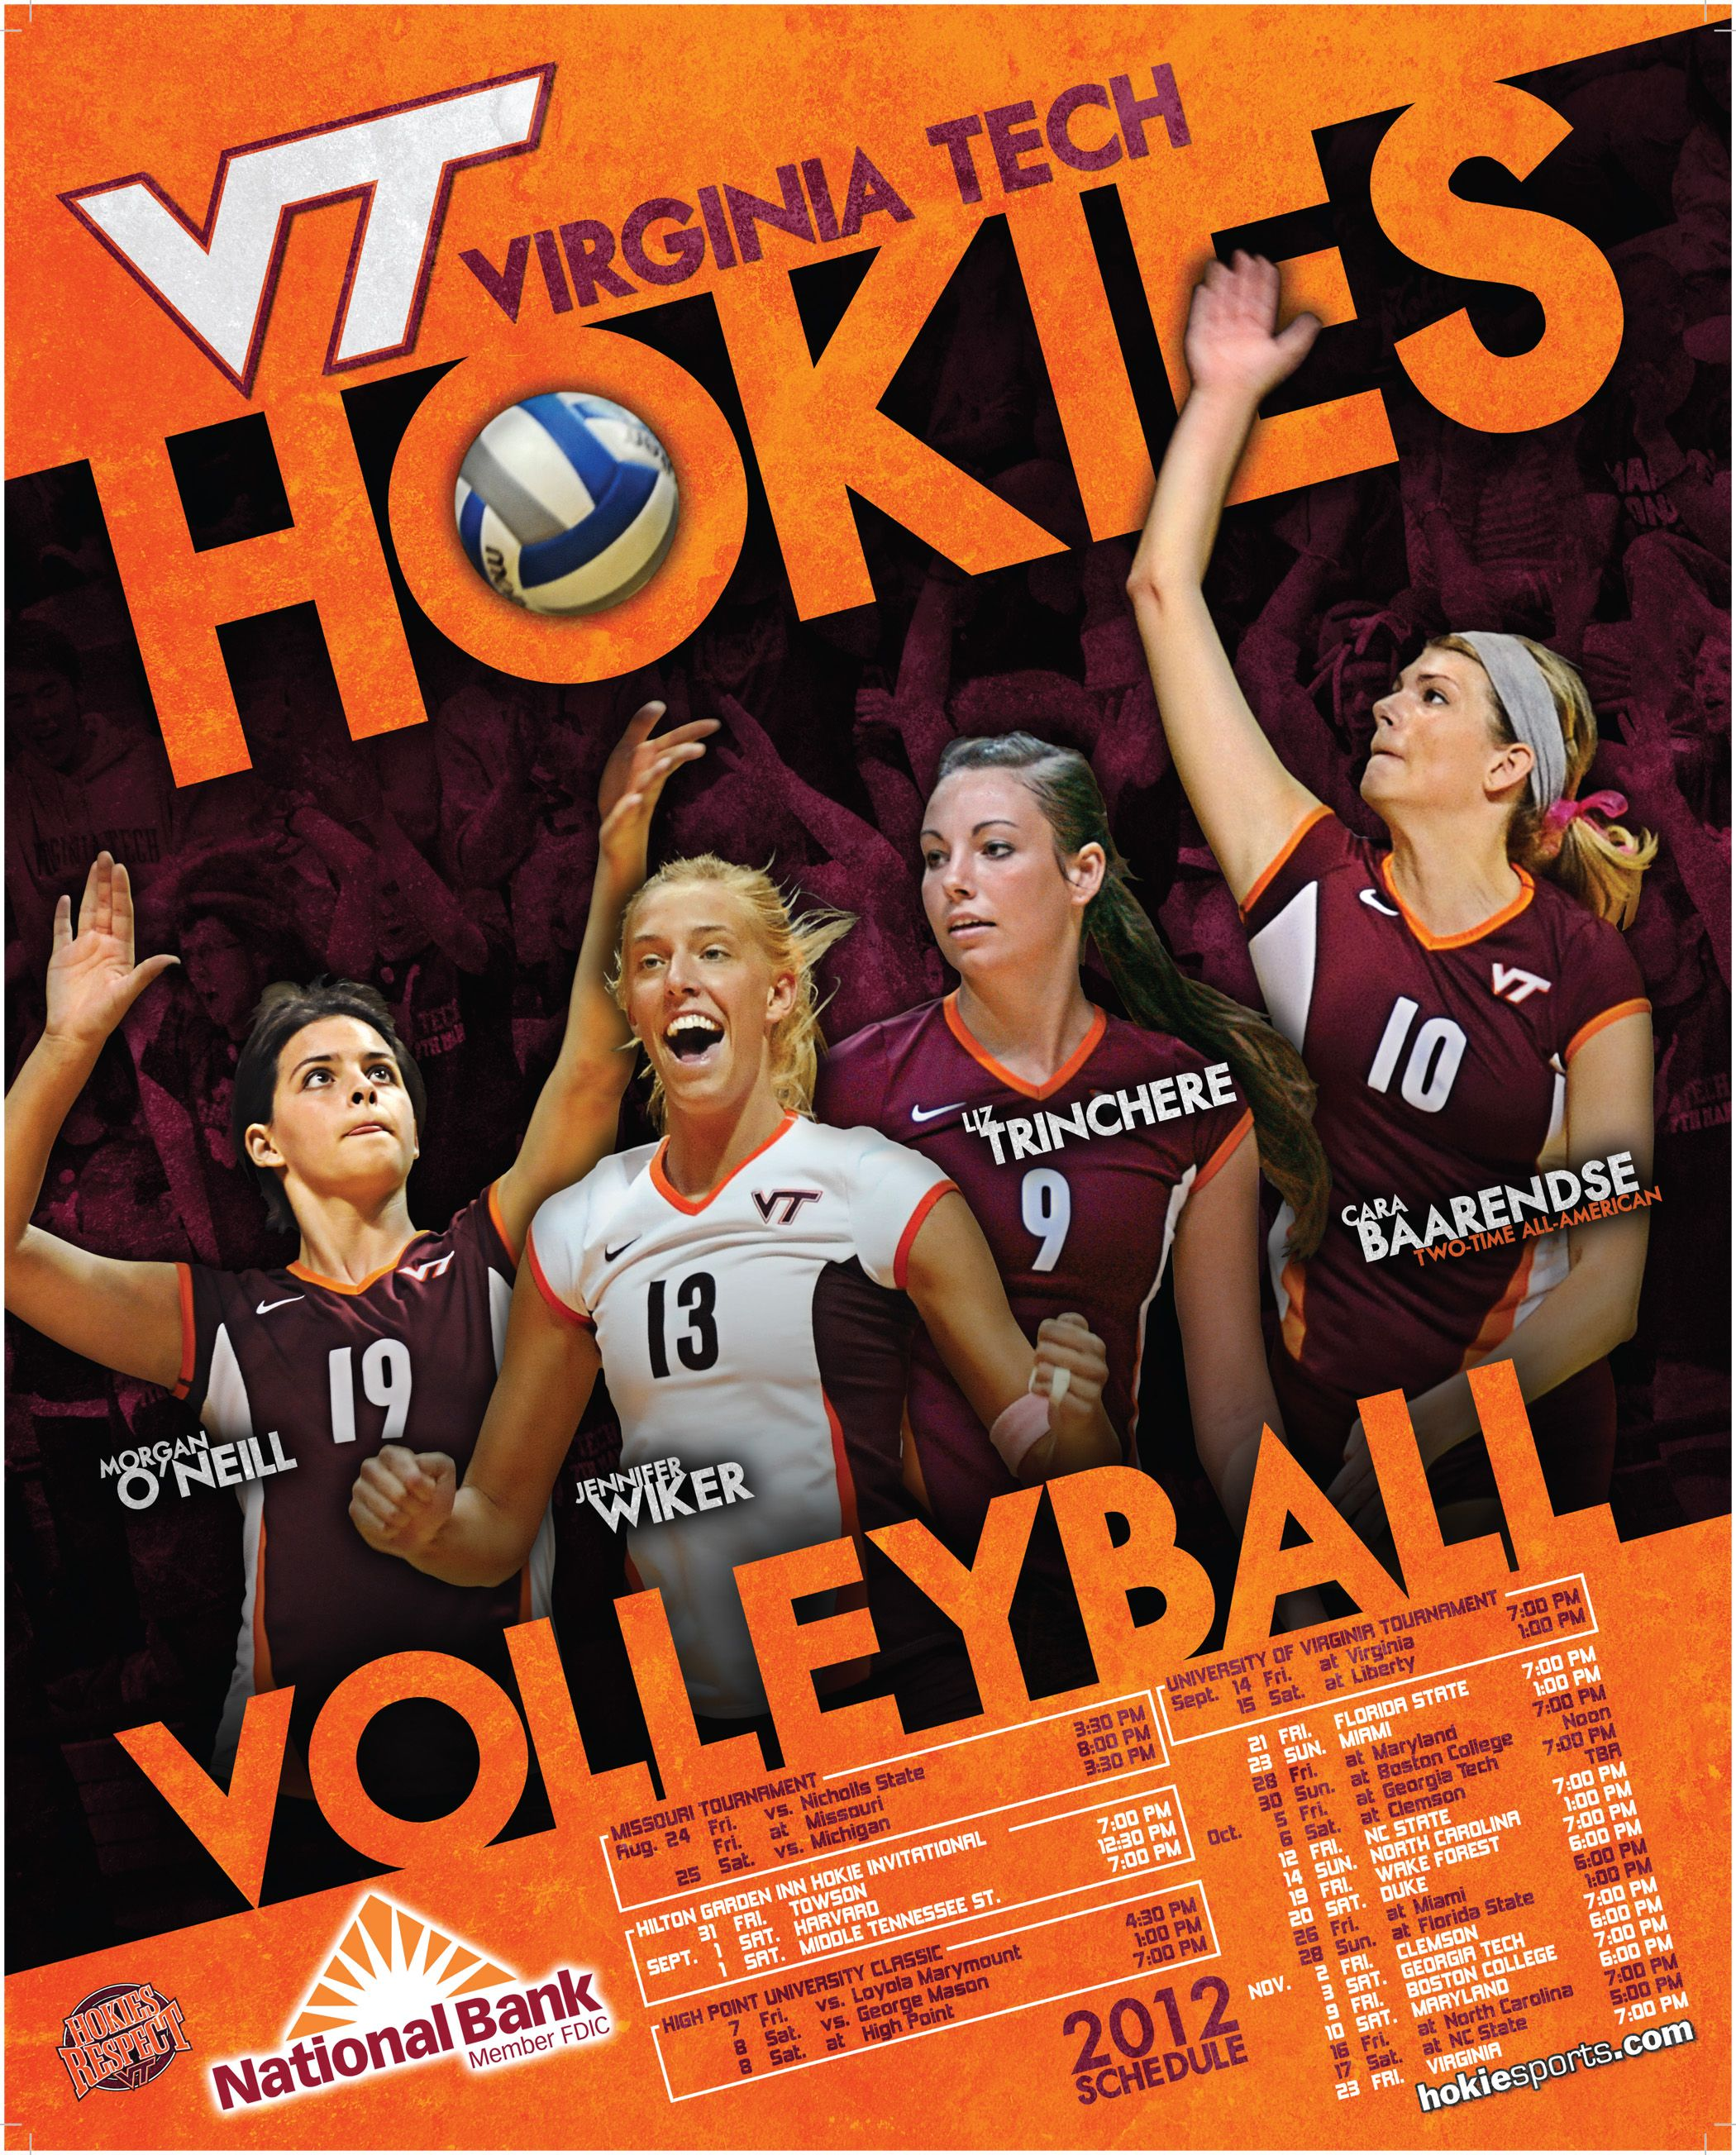 2012 Volleyball Poster Volleyball Posters Sport Poster Volleyball